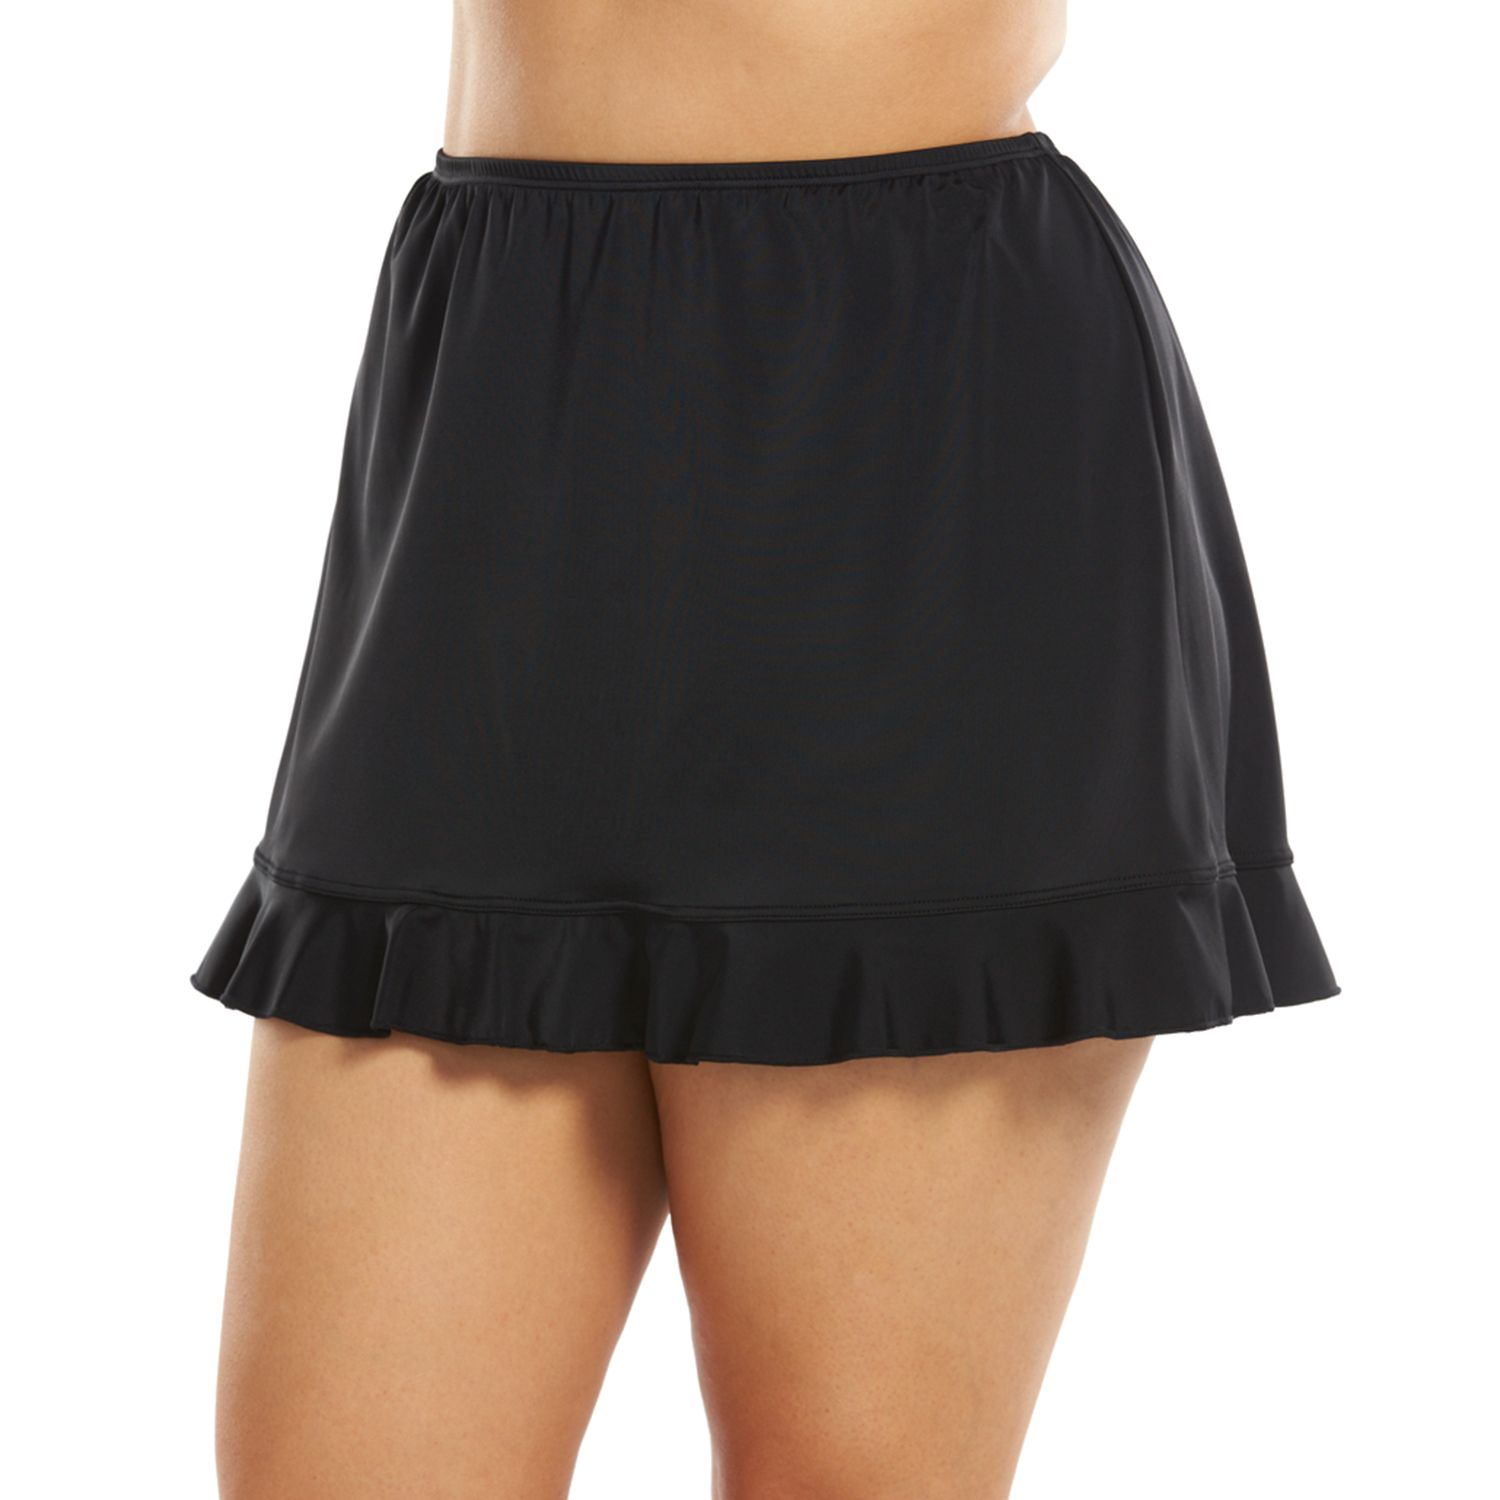 Plus Size A Shore Fit Hip Solutions Ruffled Skirtini Bottoms